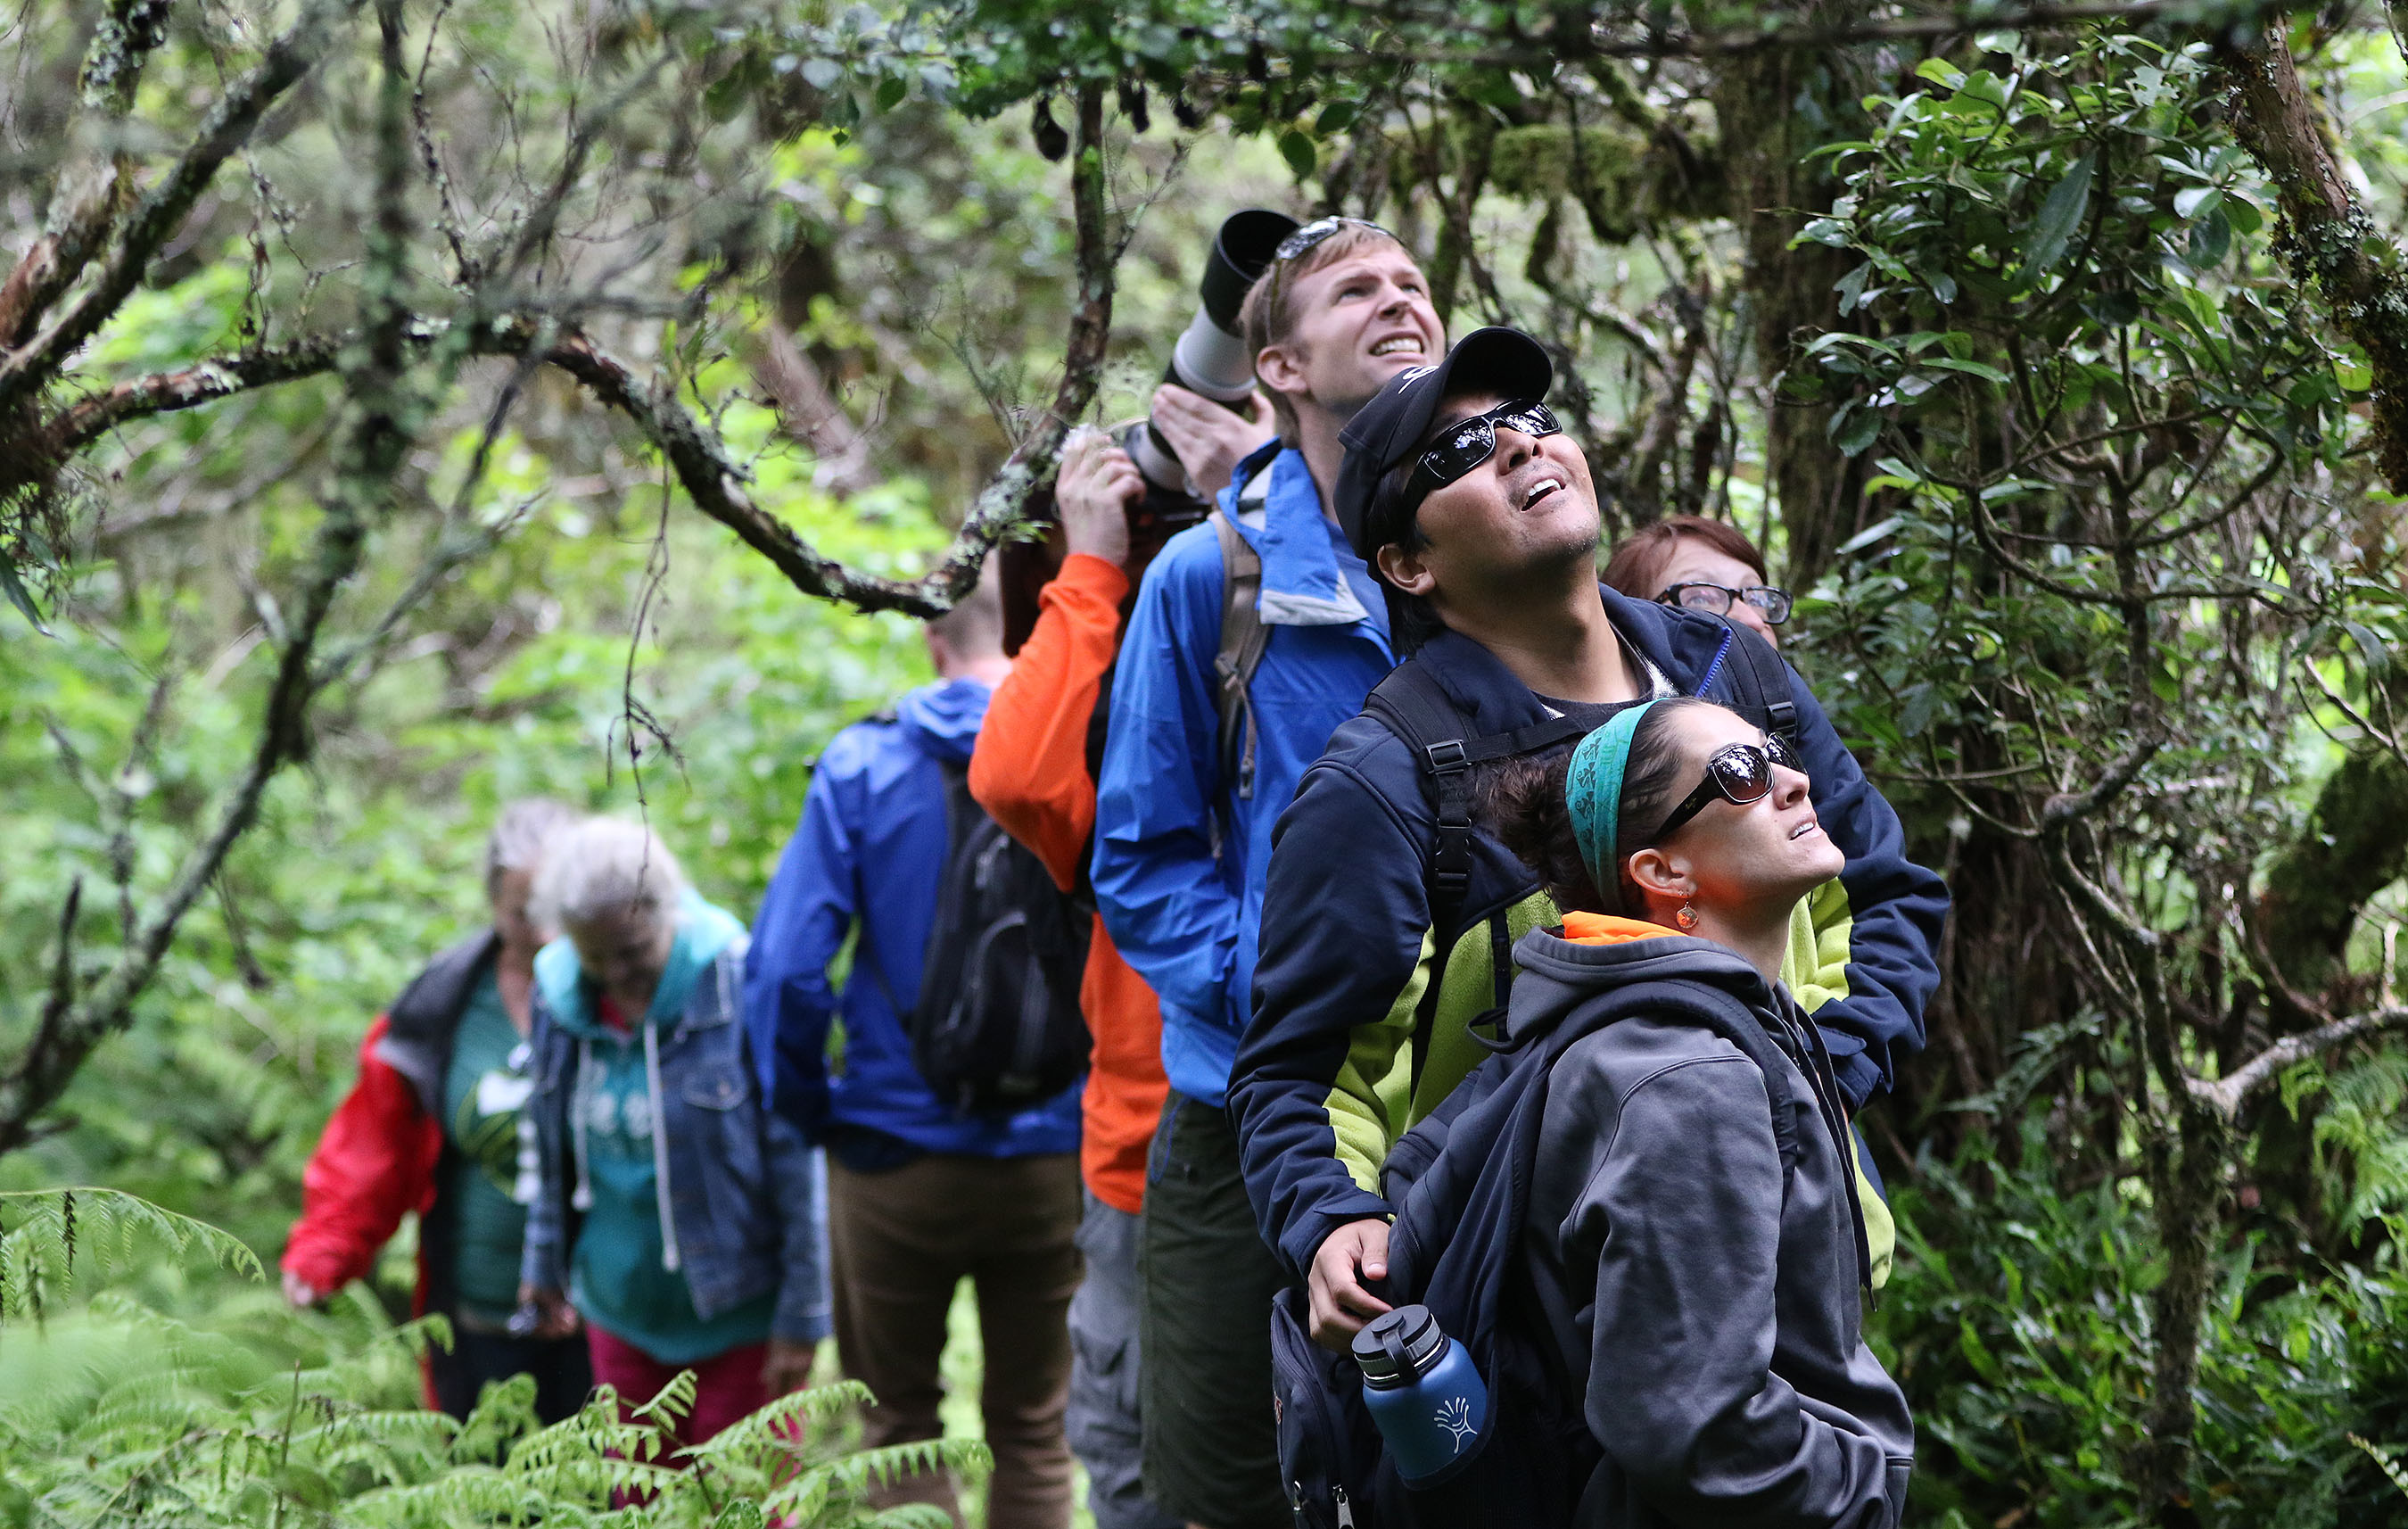 <p>Hikers stoppedto listen tobirds singing and rustling in a canopy of ohia lehua trees.</p>